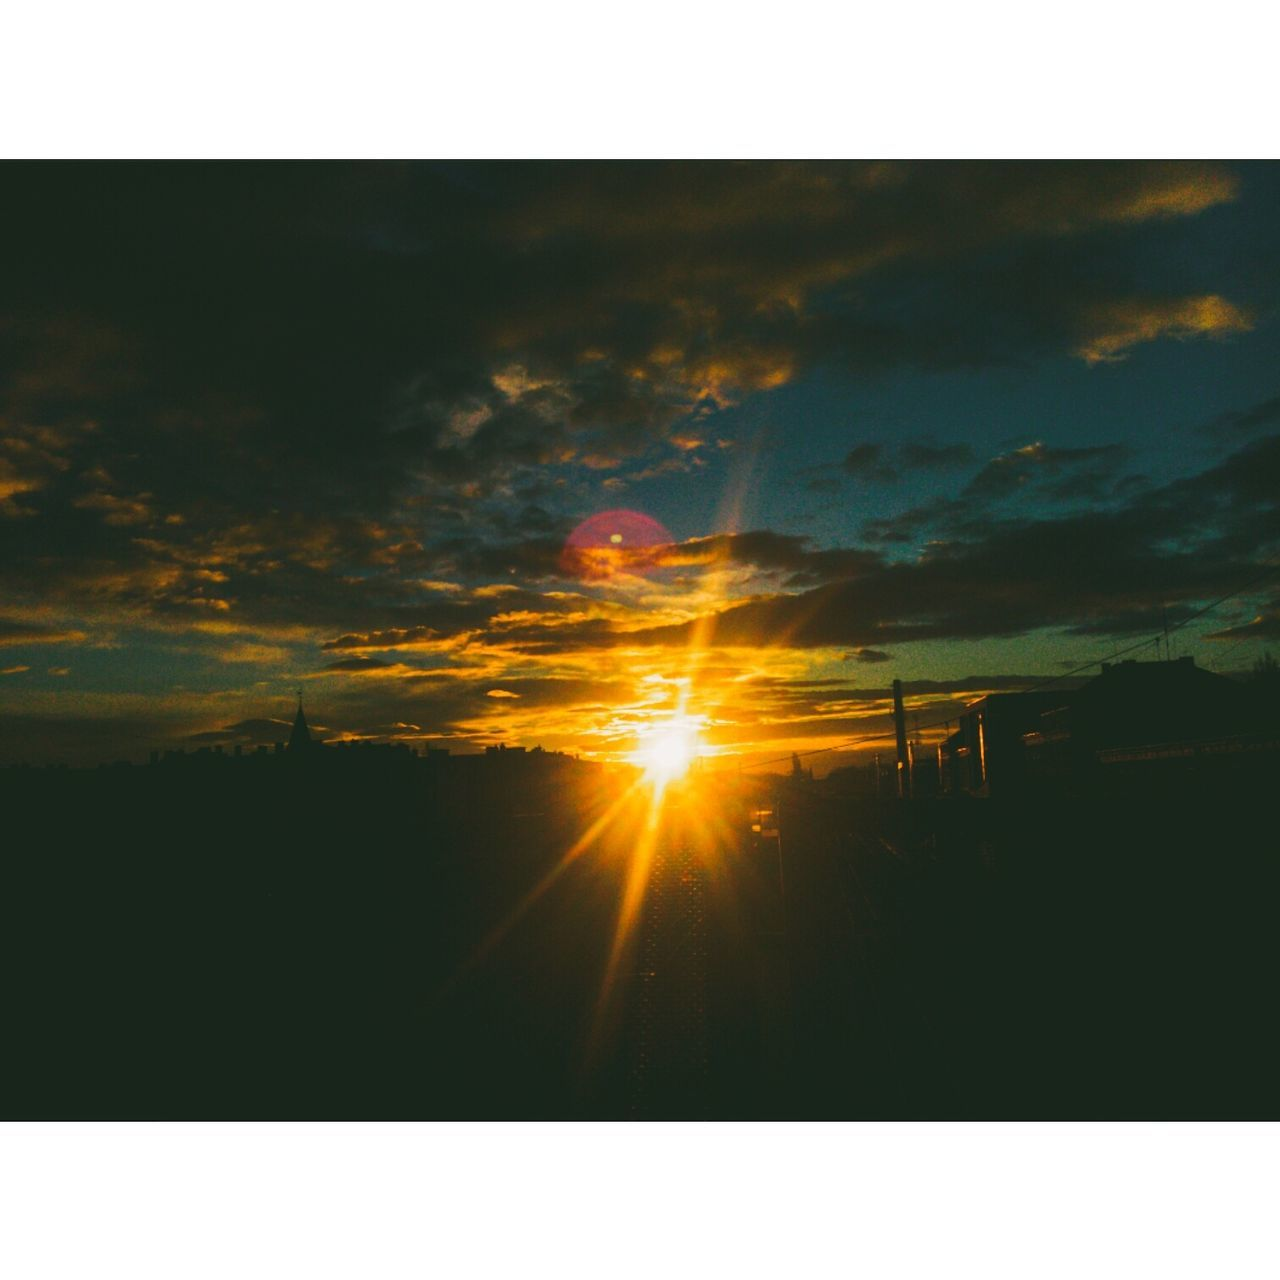 sunset, sun, silhouette, nature, scenics, tranquility, sunbeam, tranquil scene, sky, beauty in nature, no people, sunlight, outdoors, cloud - sky, landscape, day